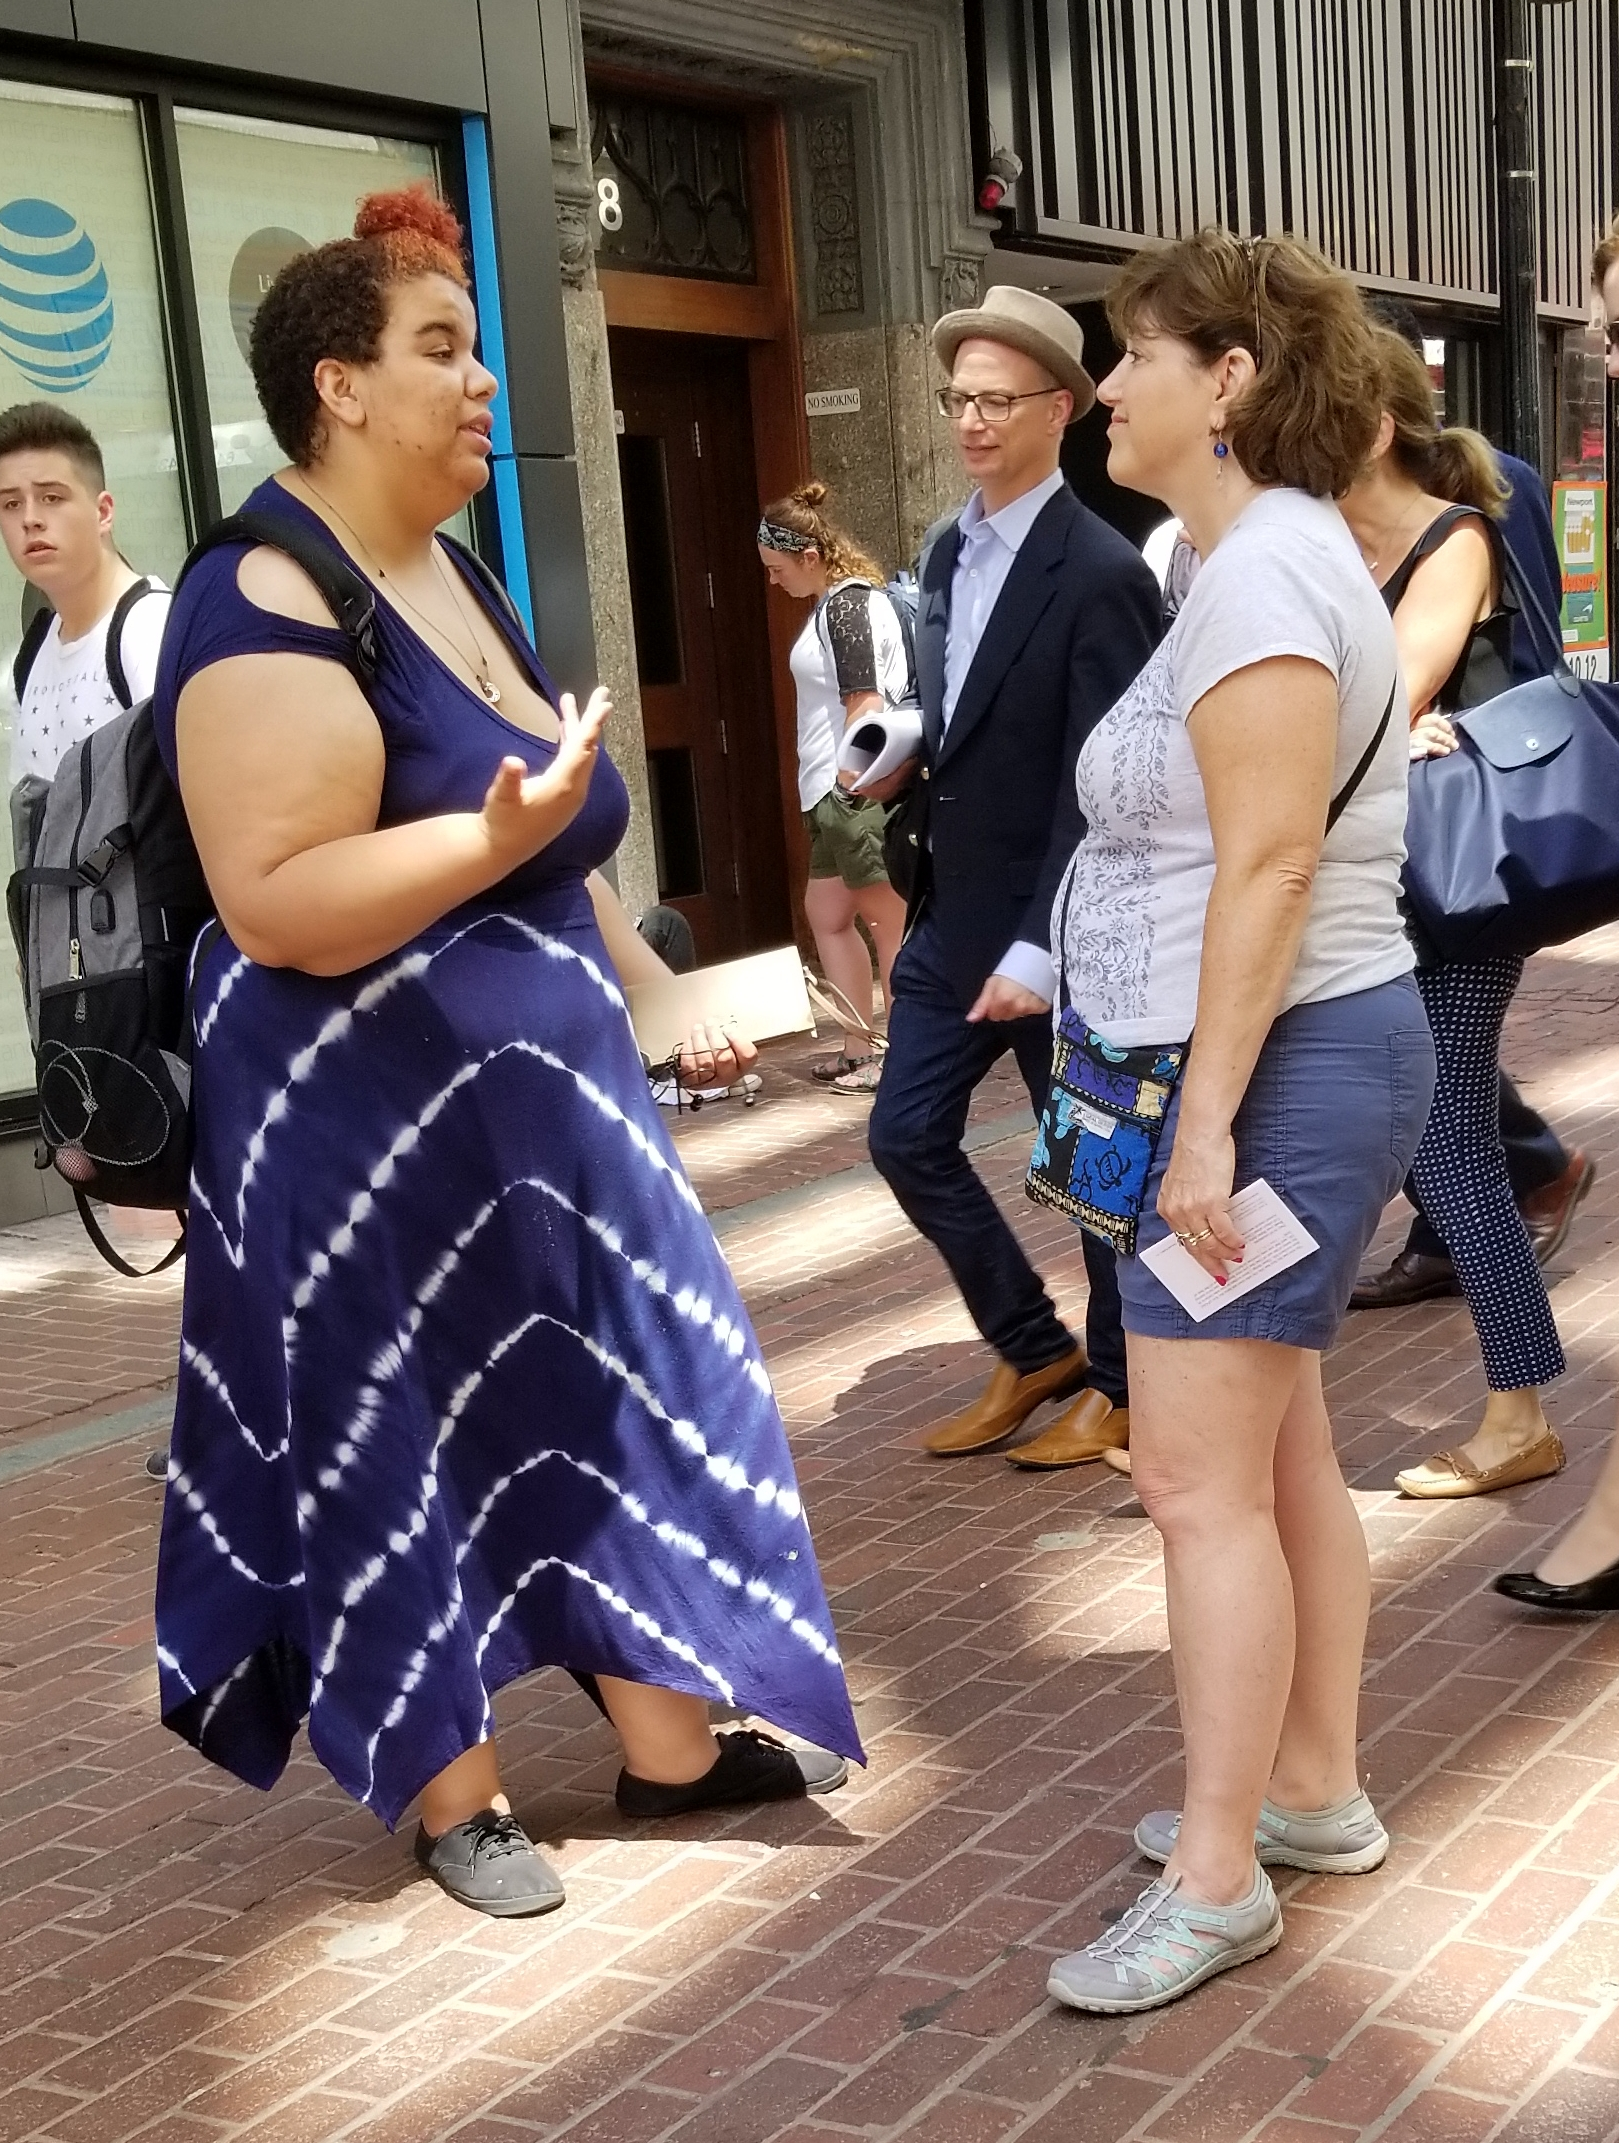 Audrey reasoning with a woman in Downtown Boston. Do strangers really stop to talk to us? Oh yes they do!